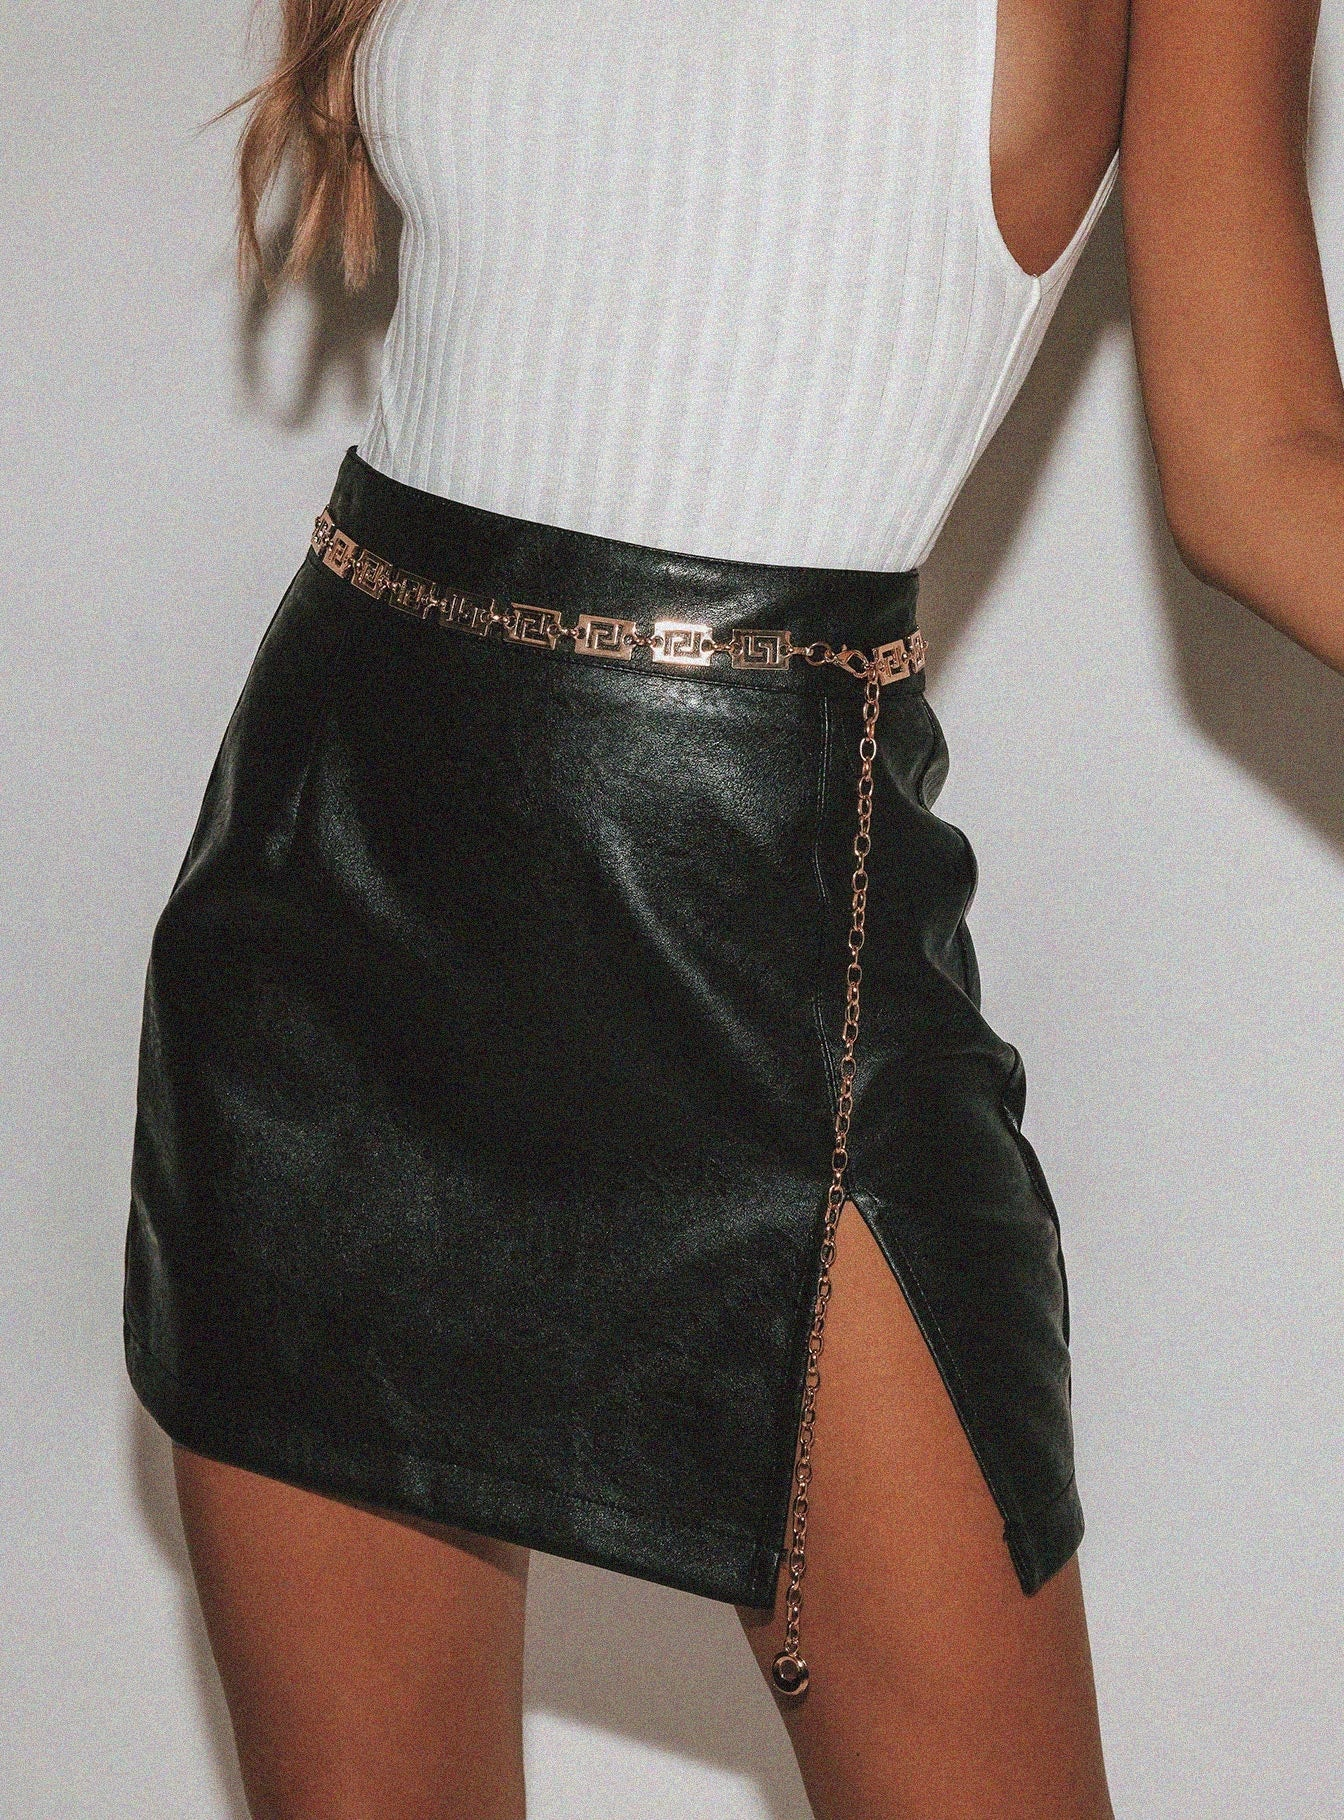 The Rizzo Mini Skirt Black